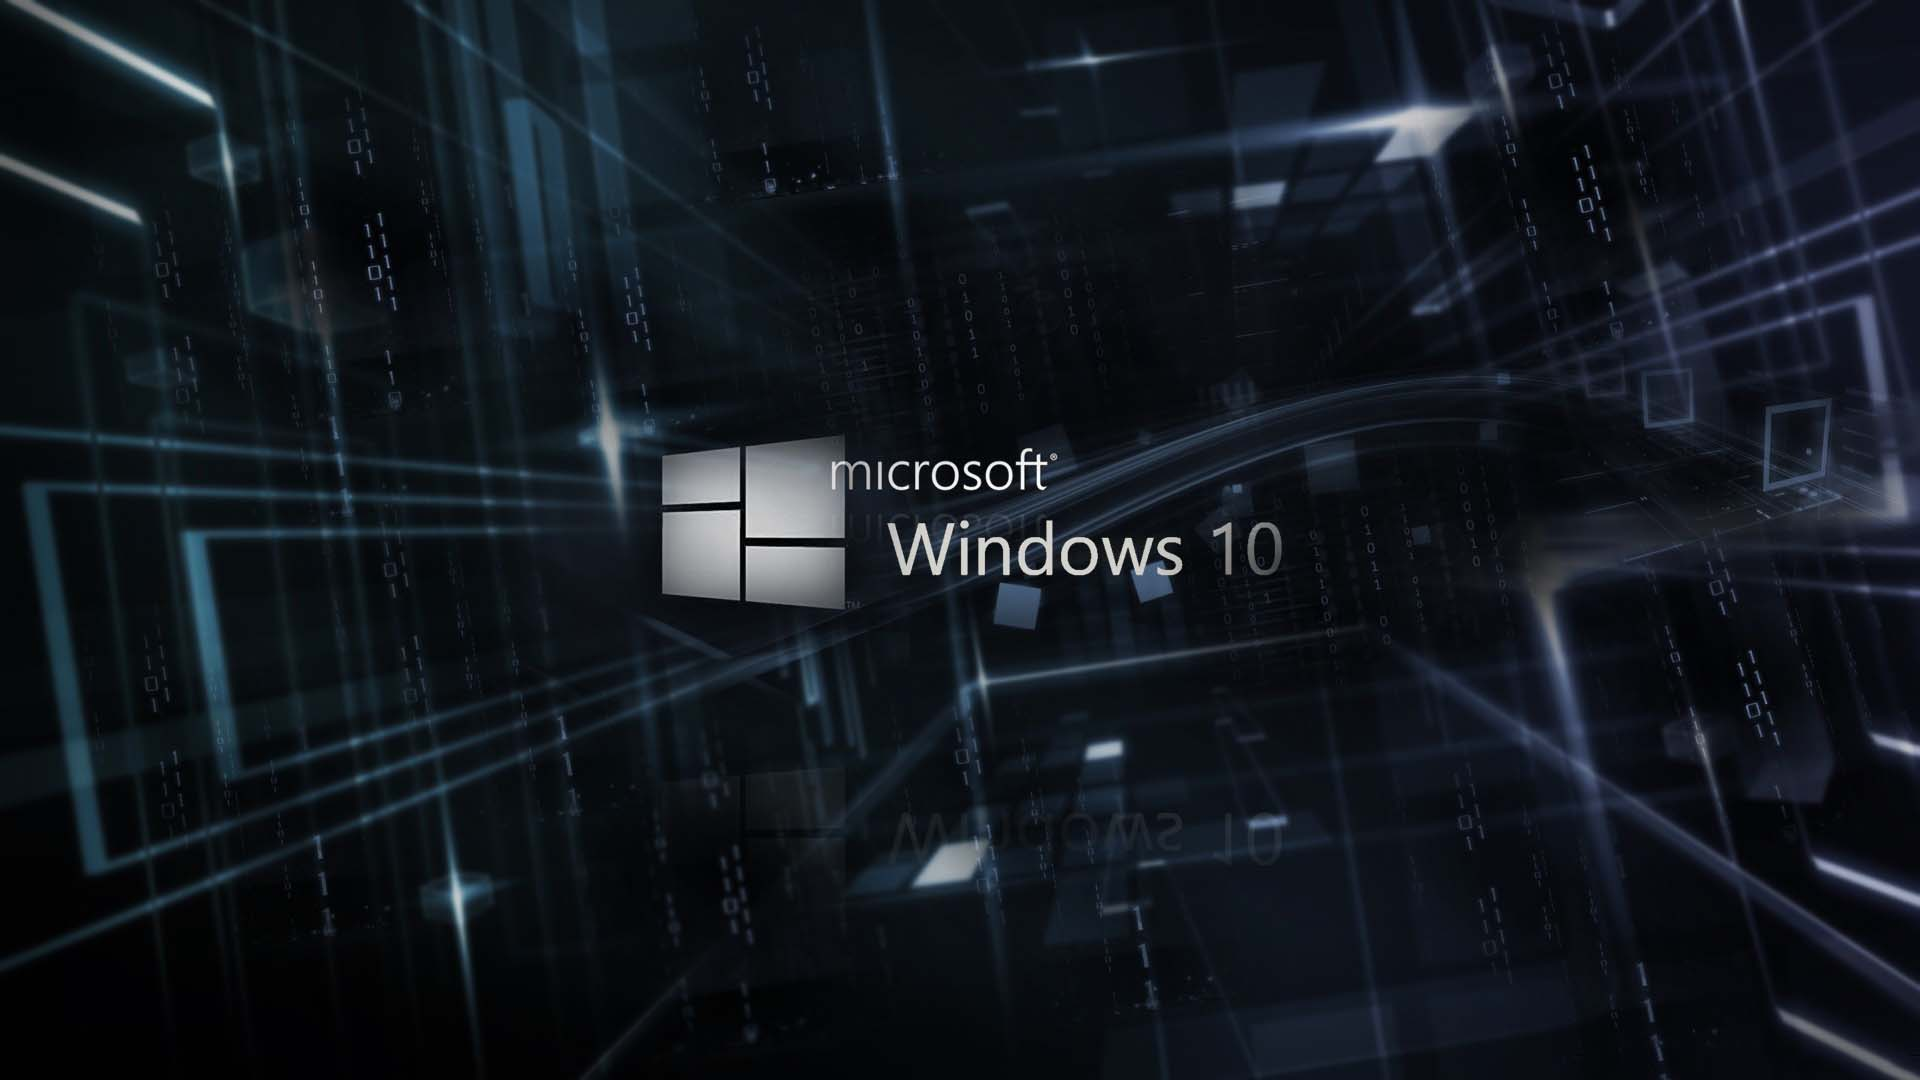 3D windows 10 wallpaper